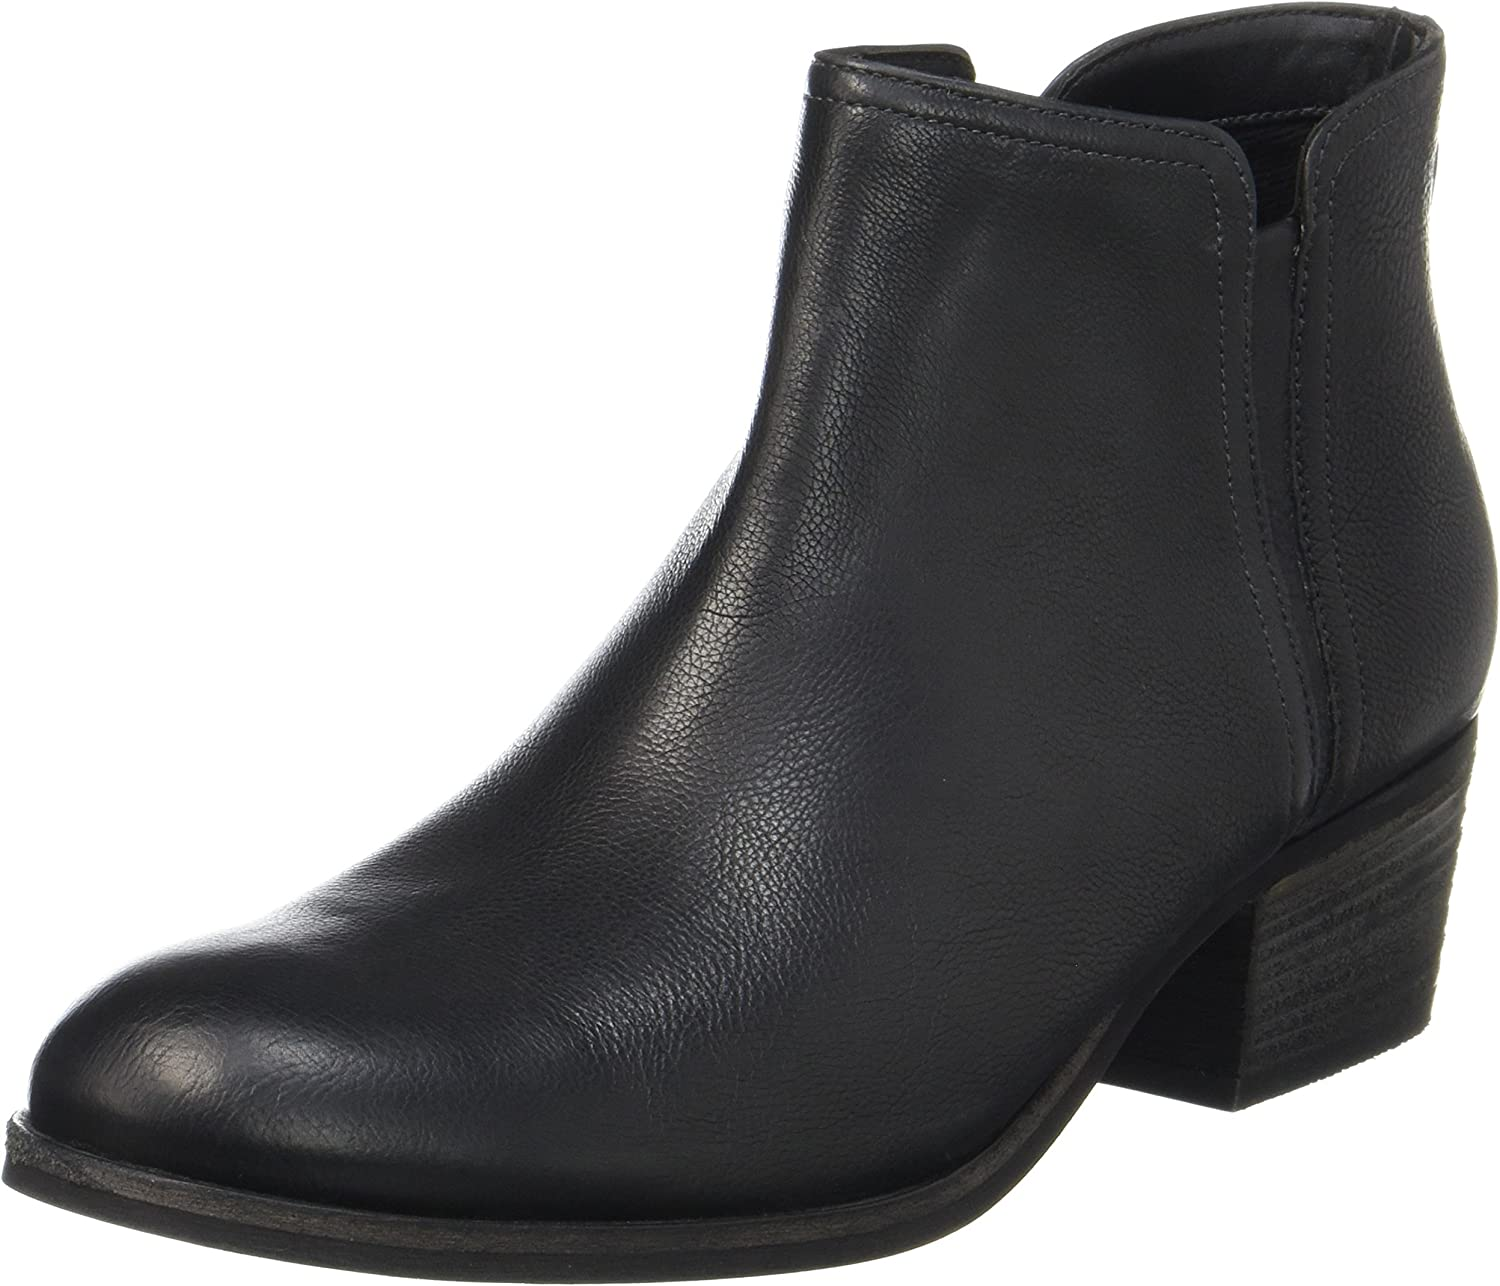 Clarks Maypearl Ramie - Black Leather Womens Boots